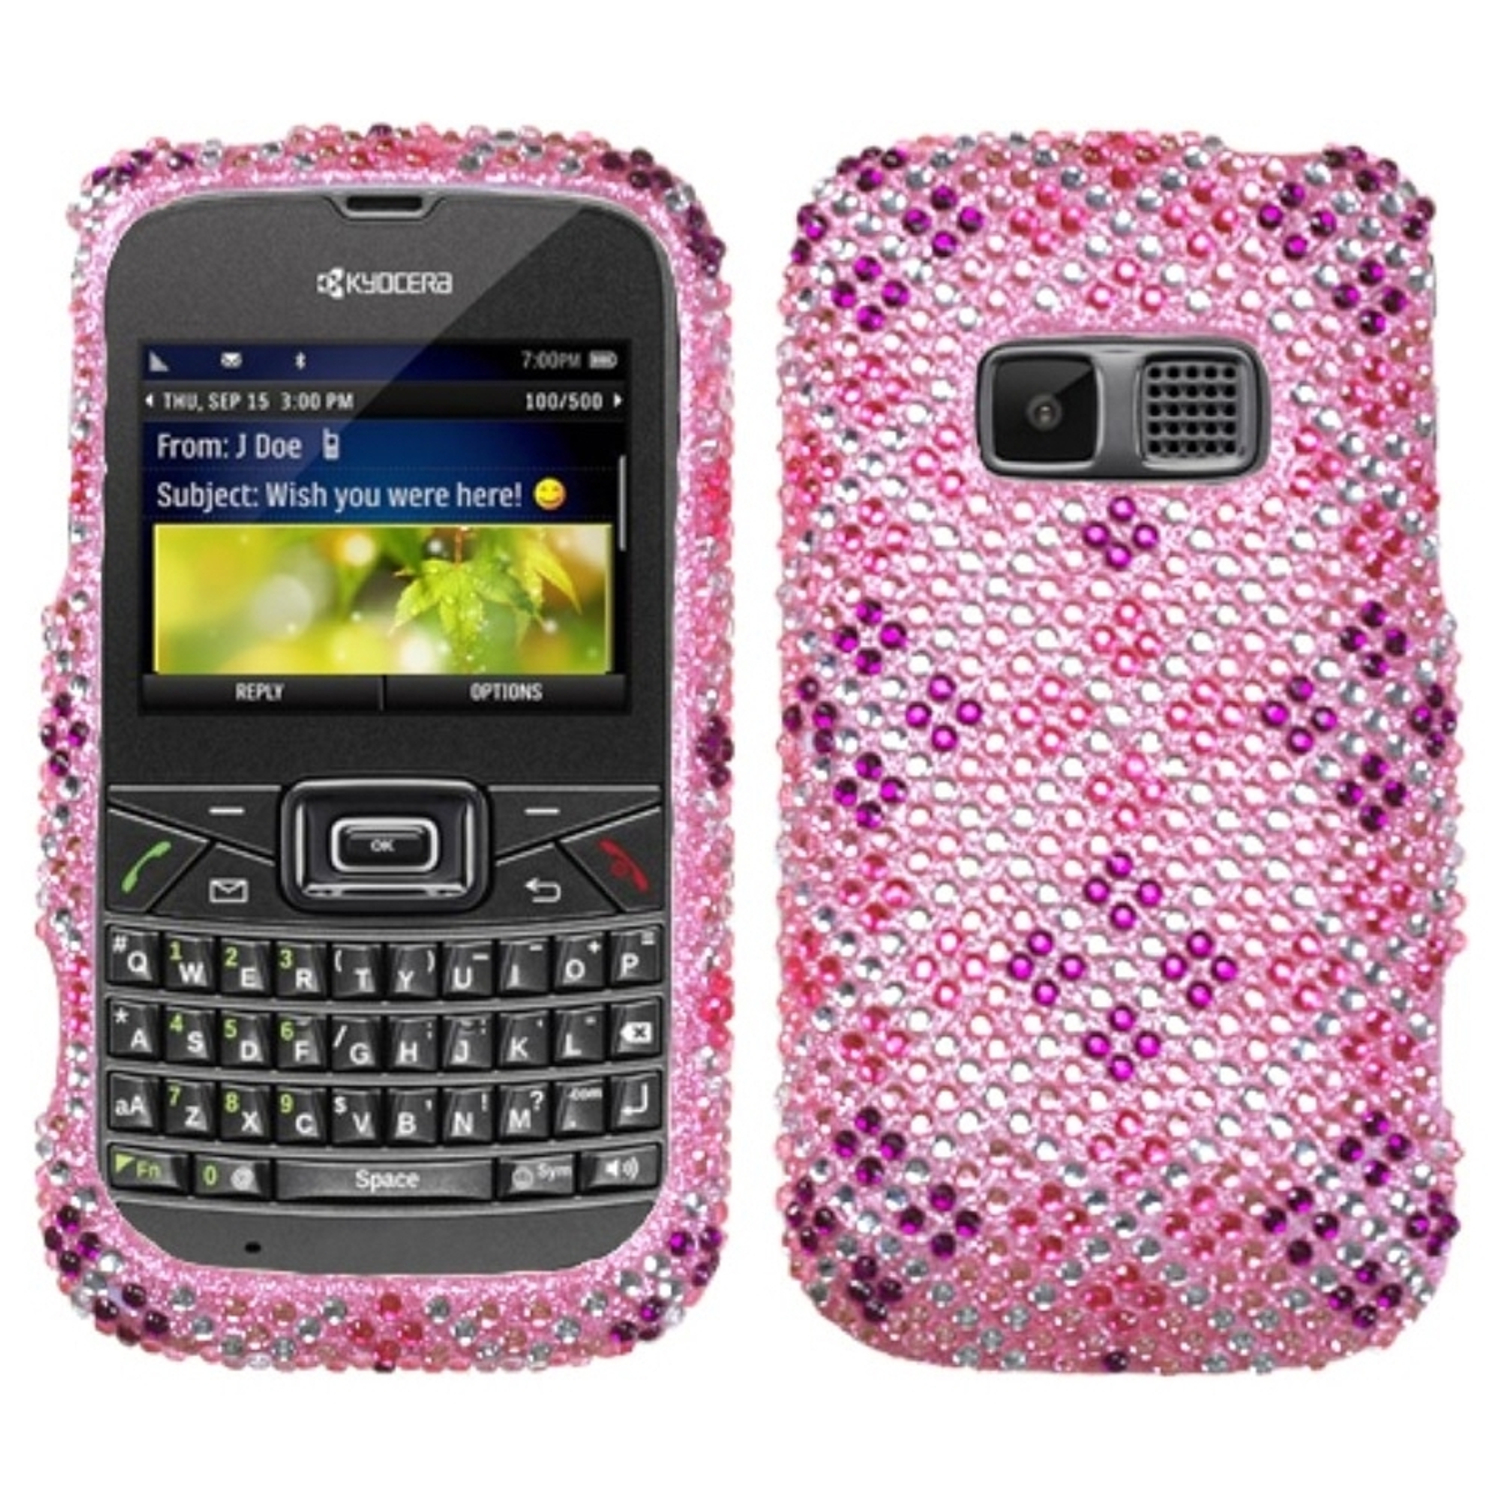 Insten Plaid Hot Pink/Purple Diamante Phone Case Cover For KYOCERA S3015 Brio